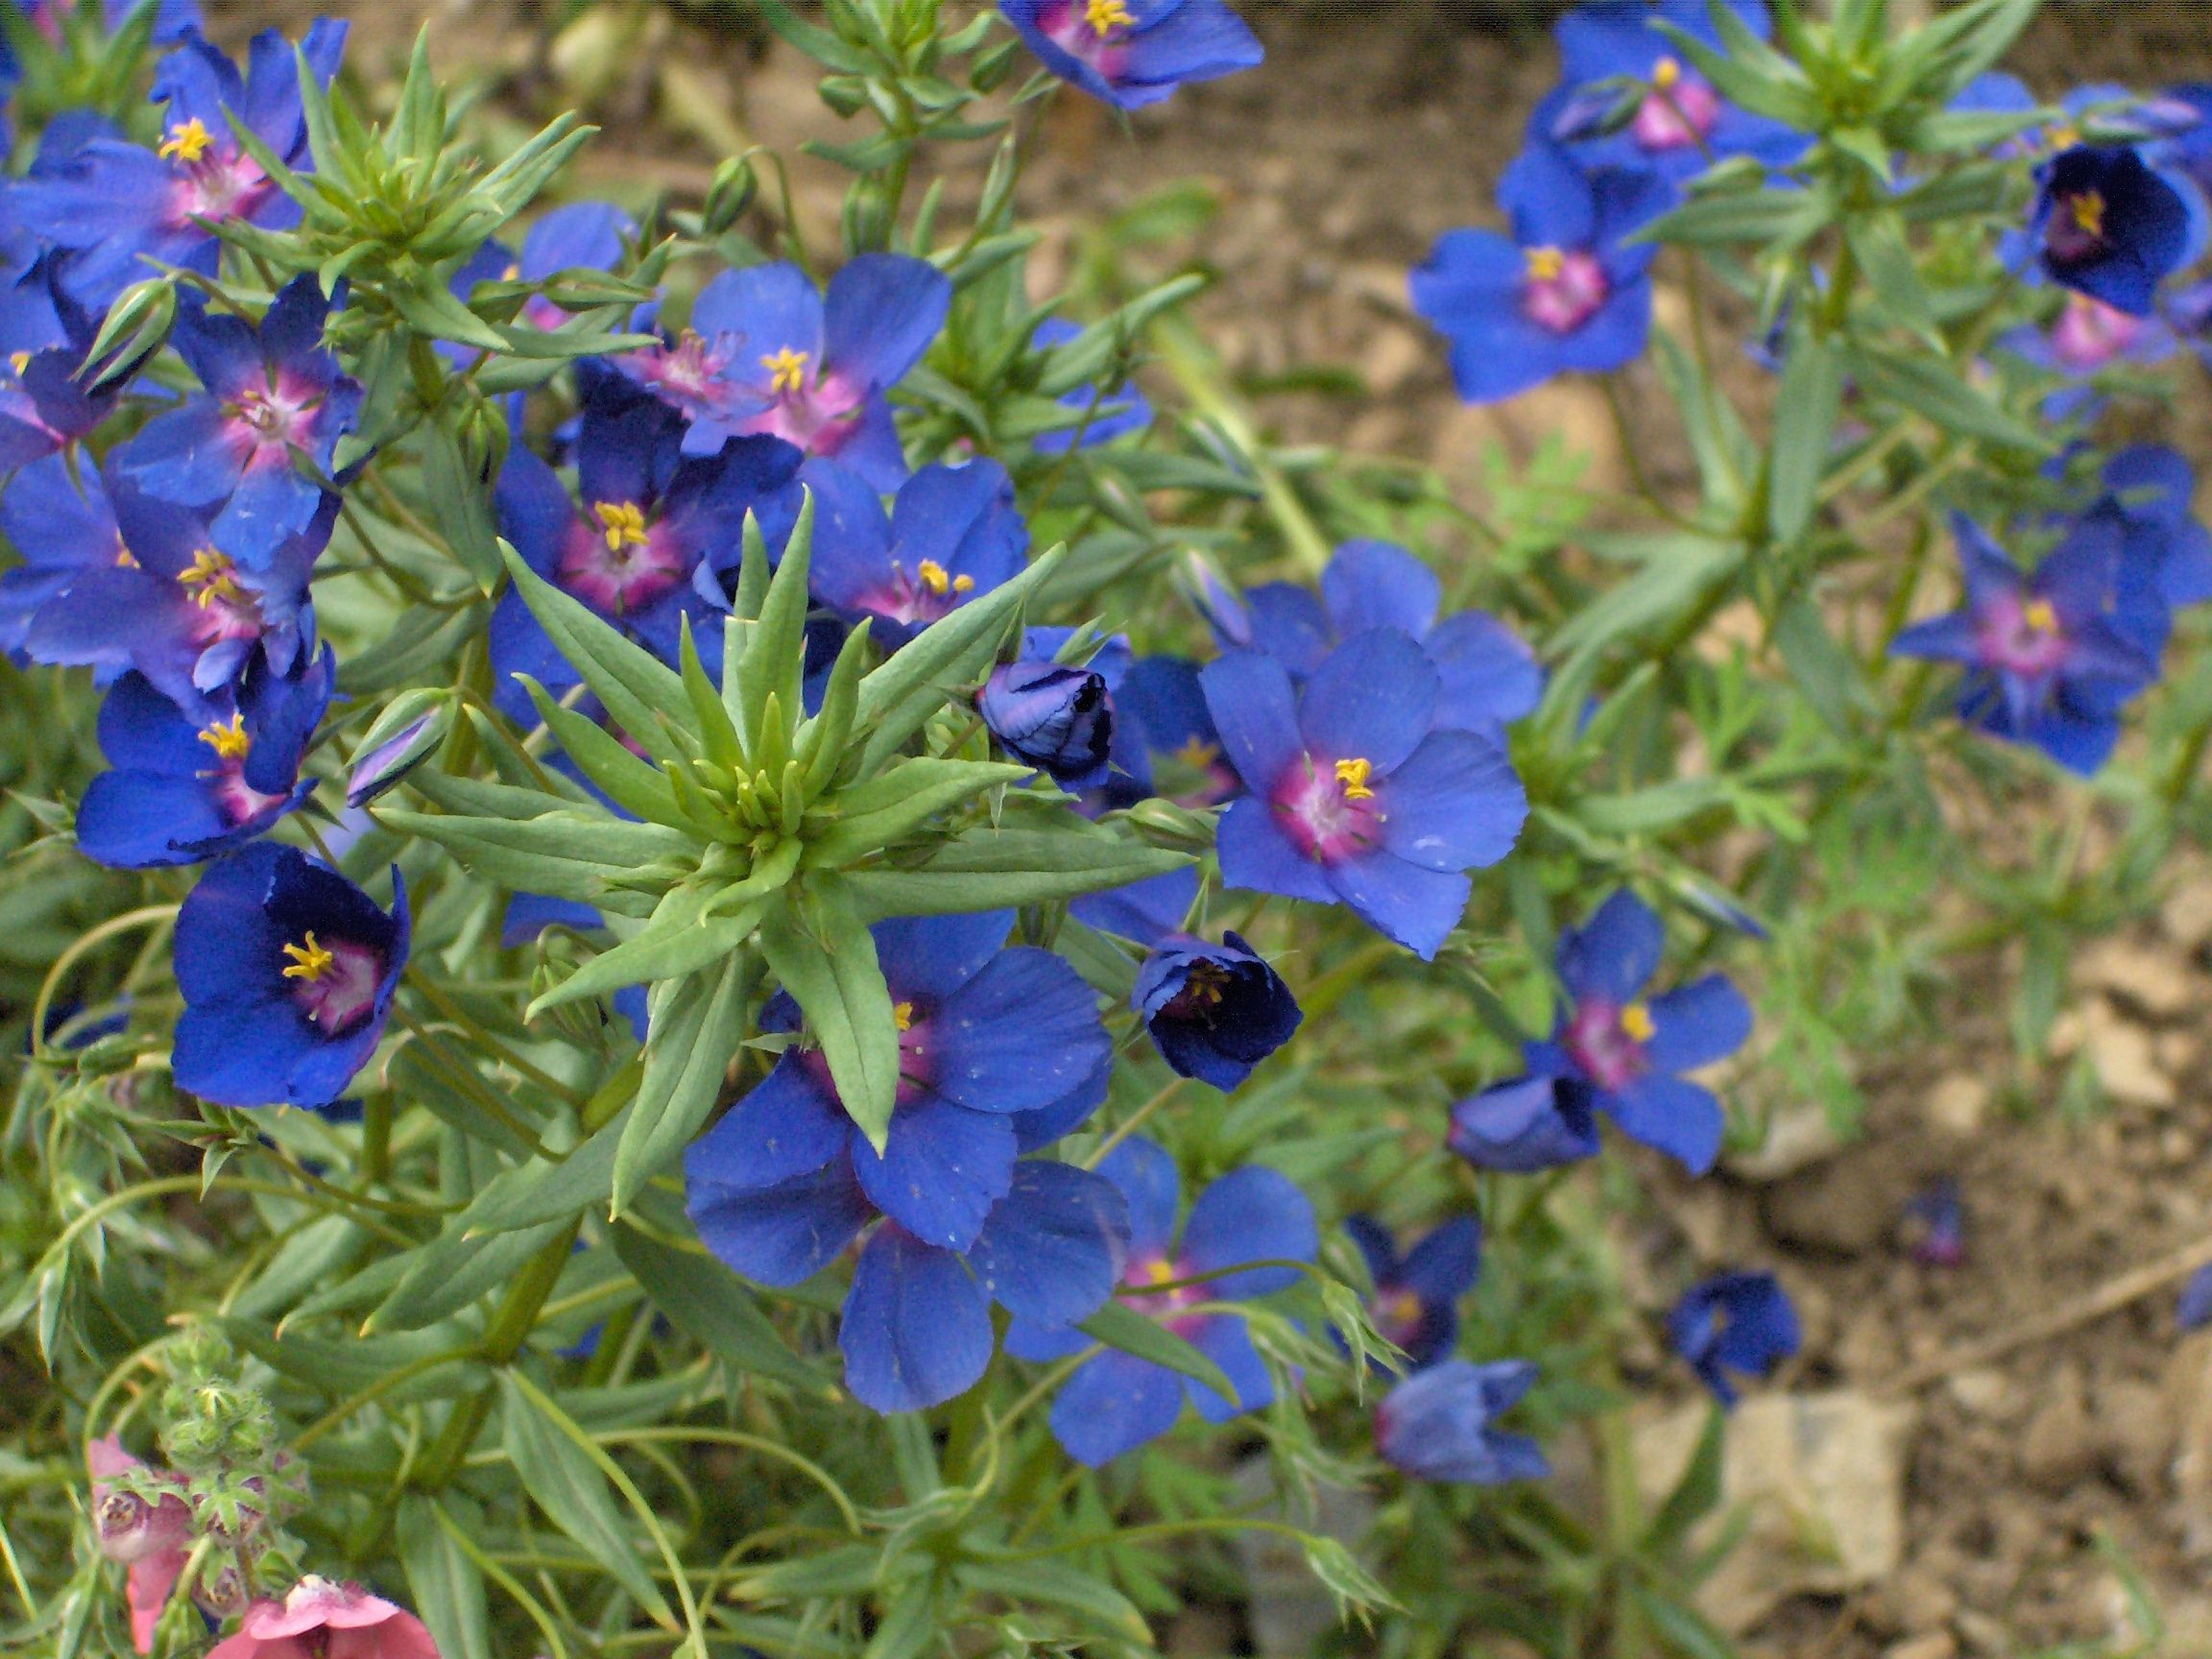 Lysimachia Monelli Commonly Known As The Blue Pimpernel And